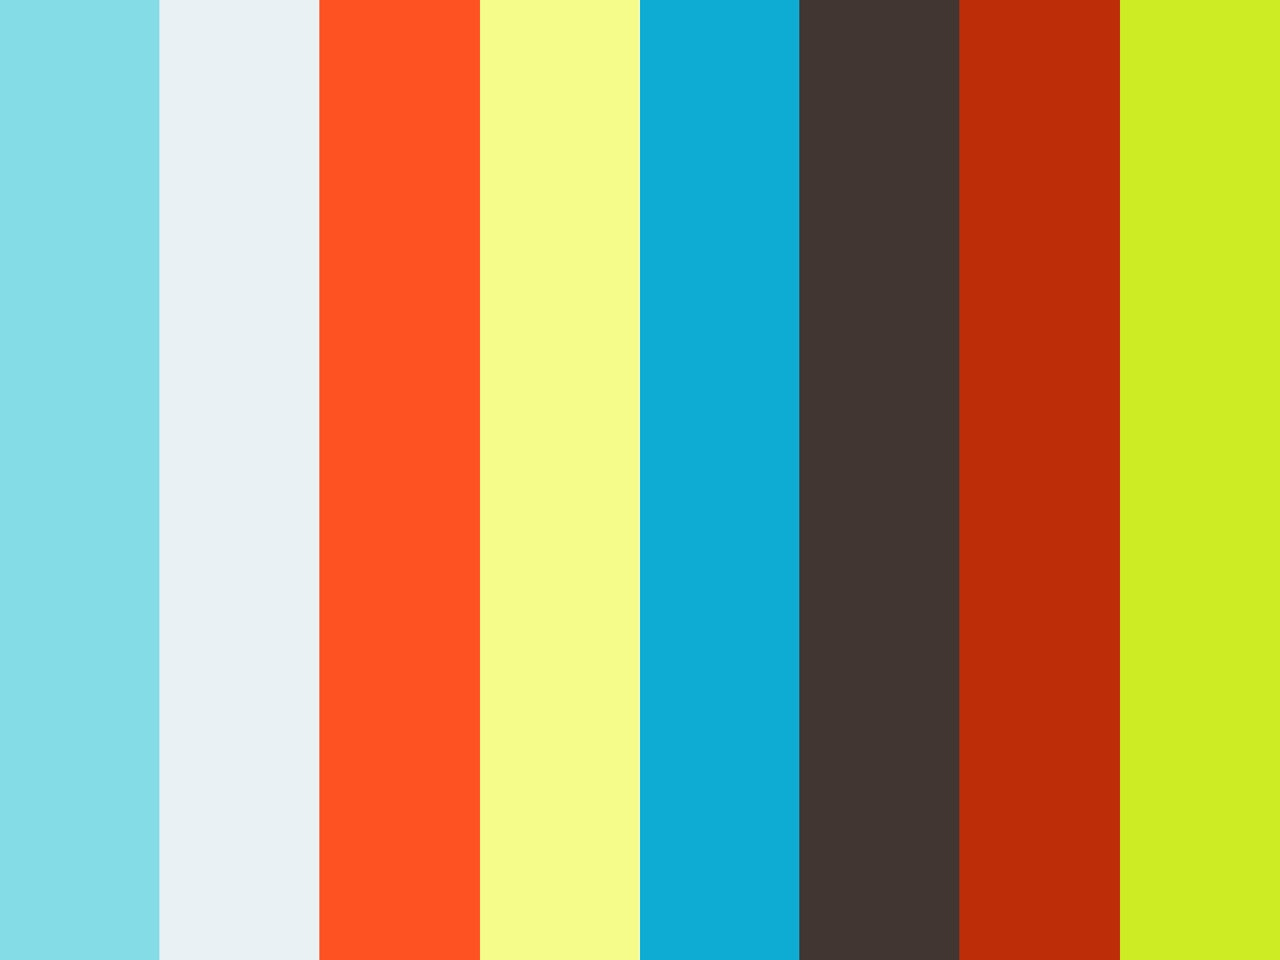 Walls of Carcassonne, France